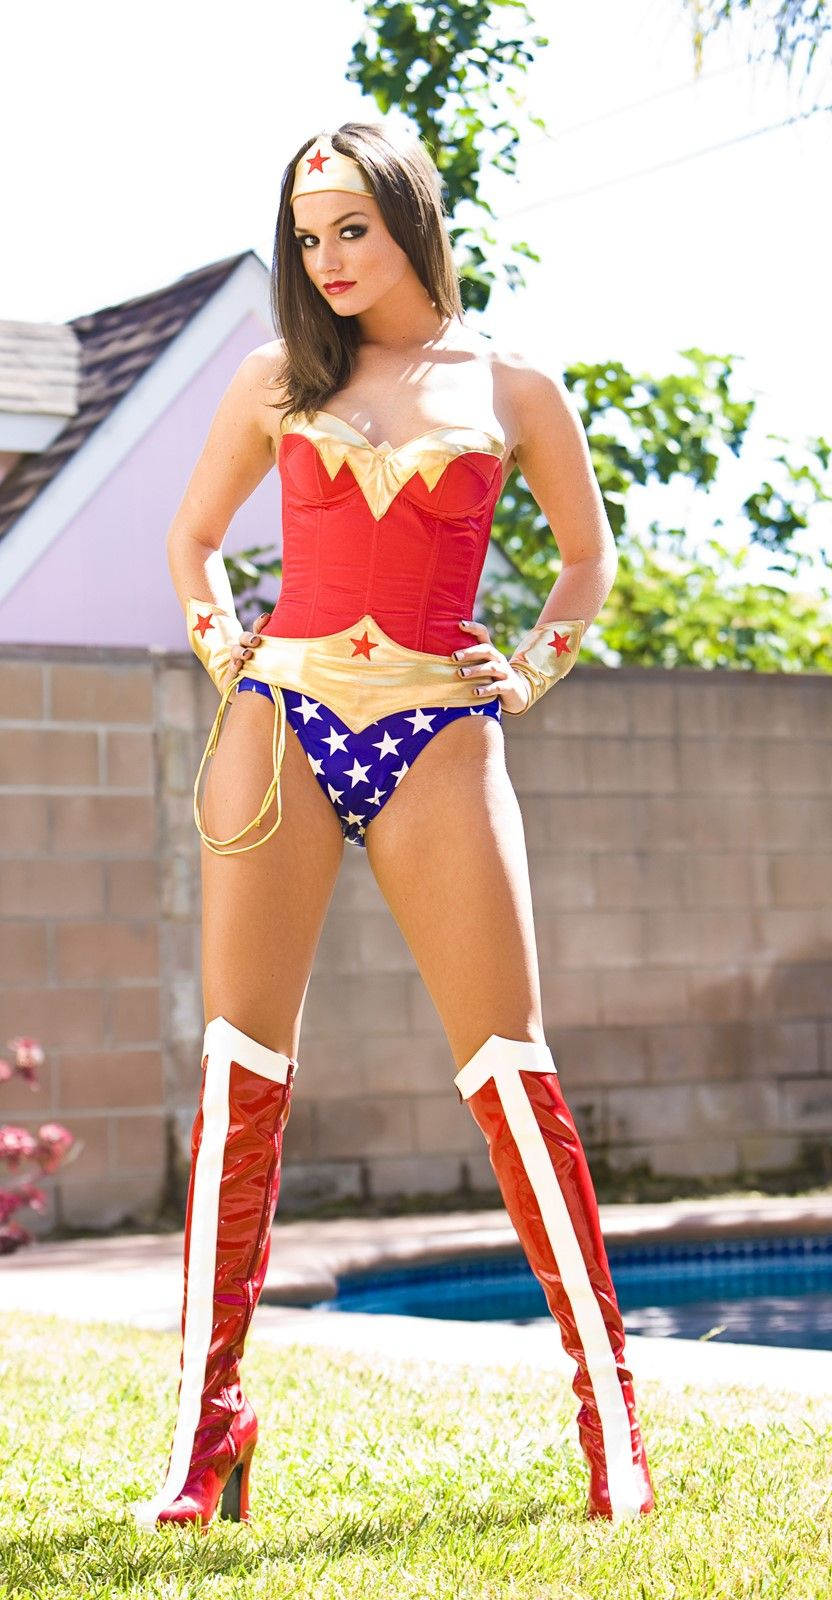 Tori black as wonder woman can